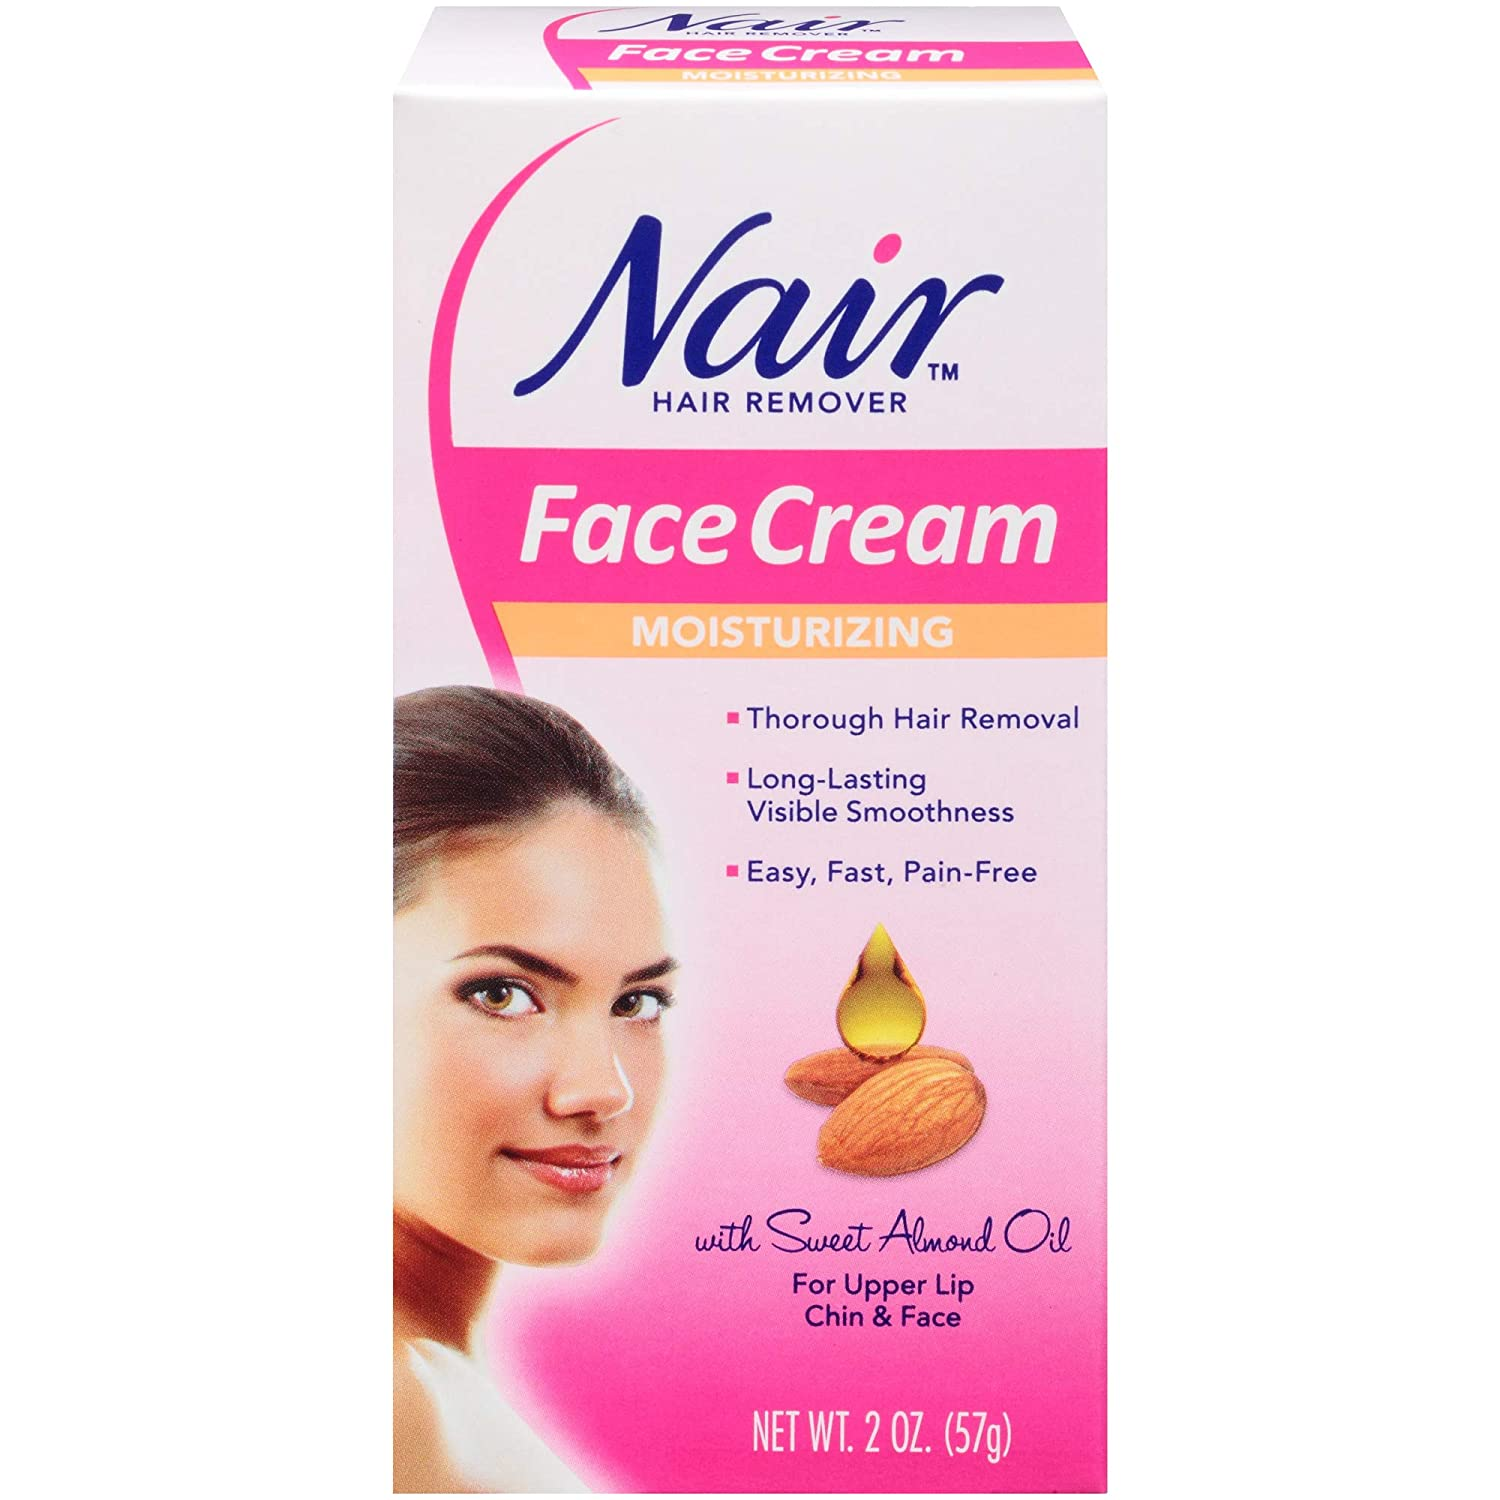 Amazon Com Nair Hair Remover Moisturizing Face Cream With Sweet Almond Oil 2oz Facial Care Products Beauty